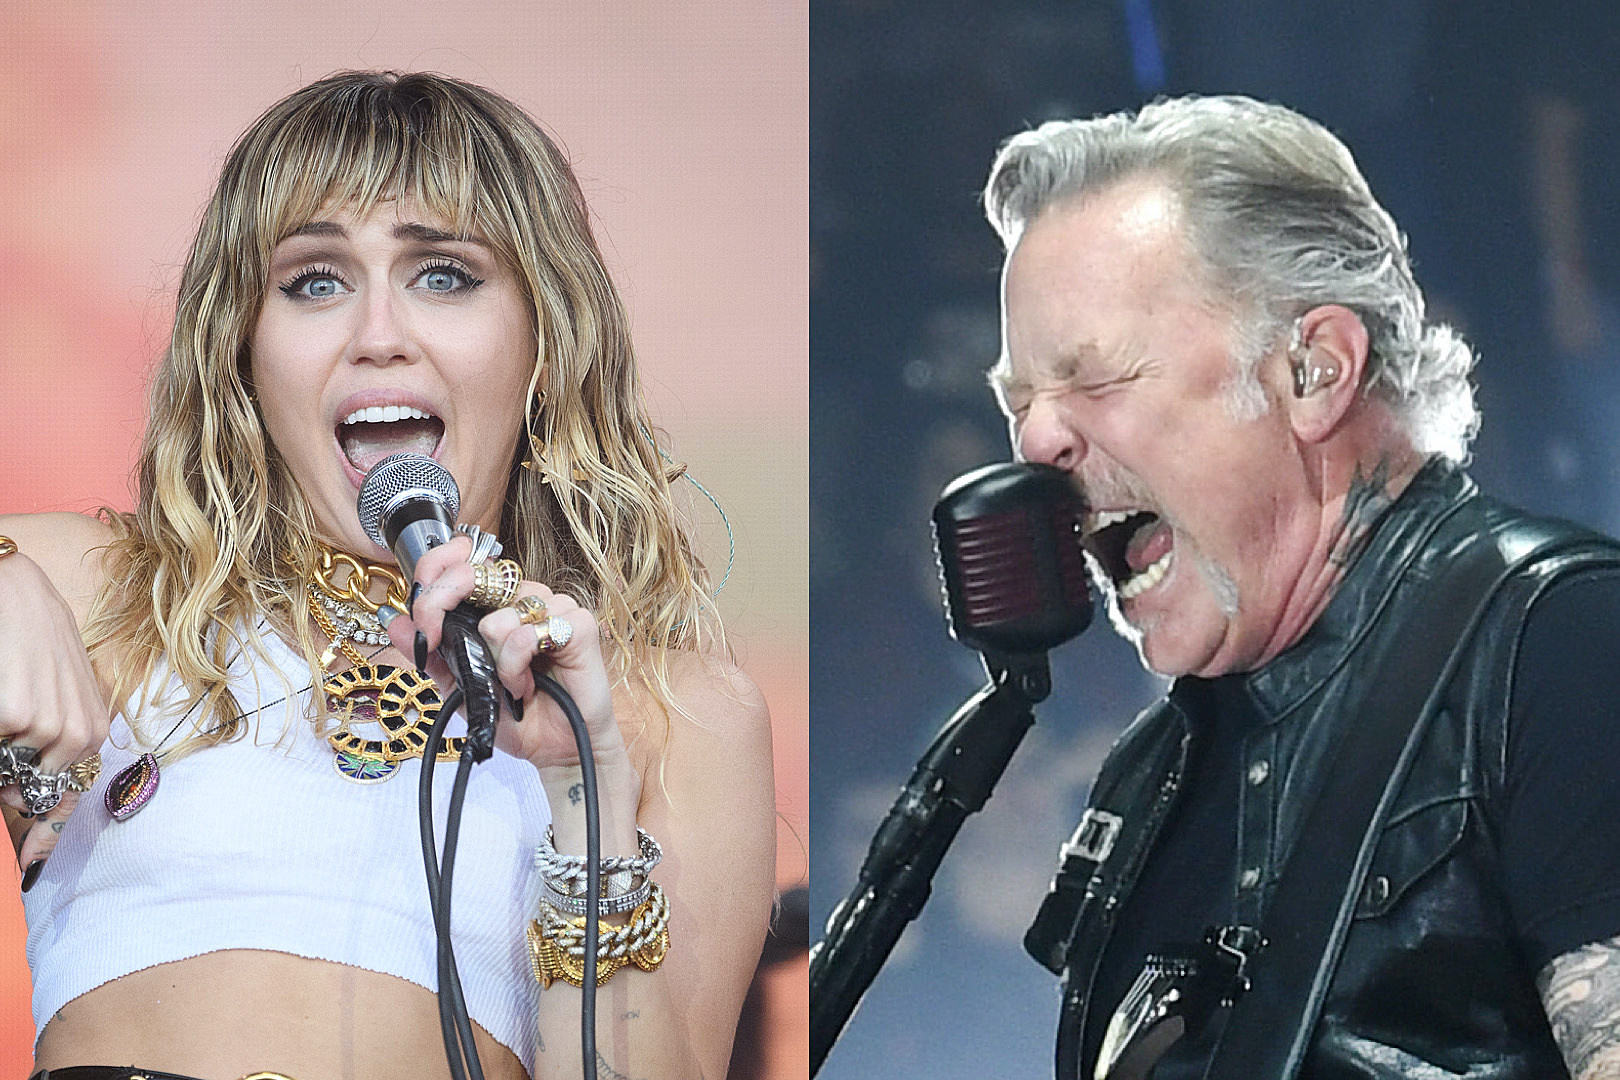 Why Miley Cyrus Covered Metallica's 'Nothing Else Matters'